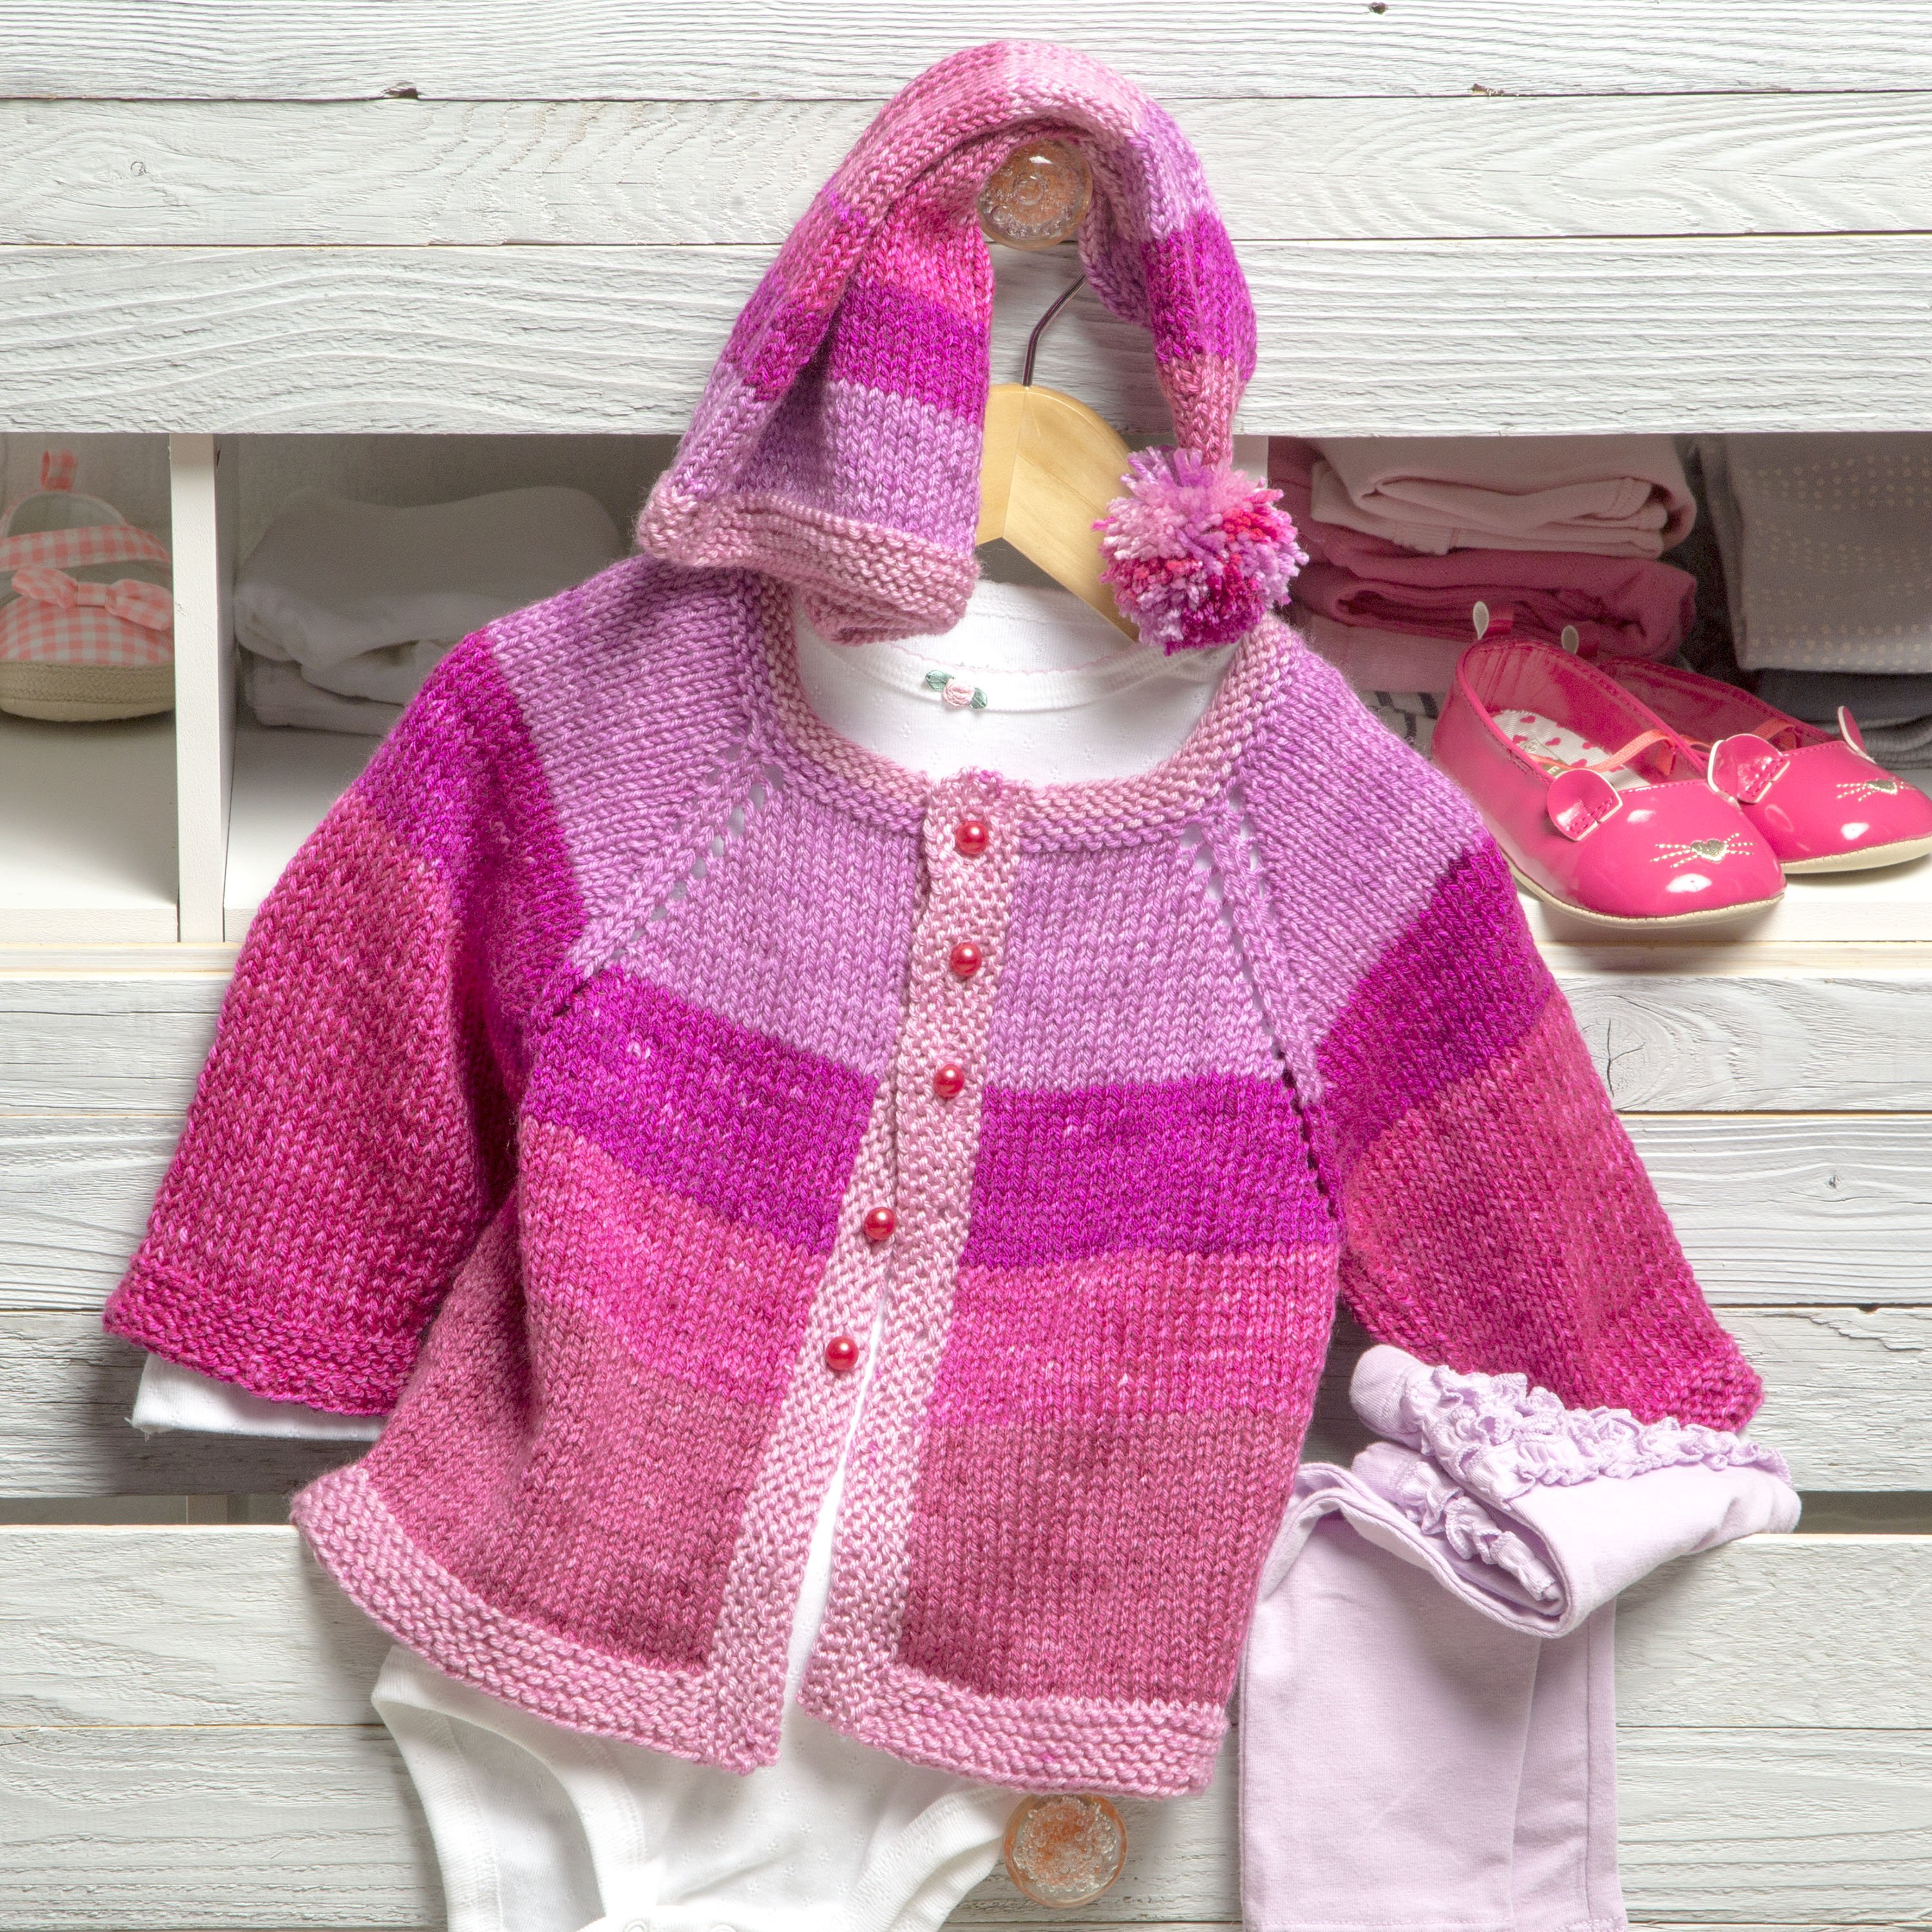 Free Baby Knitting Pattern for a Pixie Cardigan and Hat ⋆ Knitting Bee